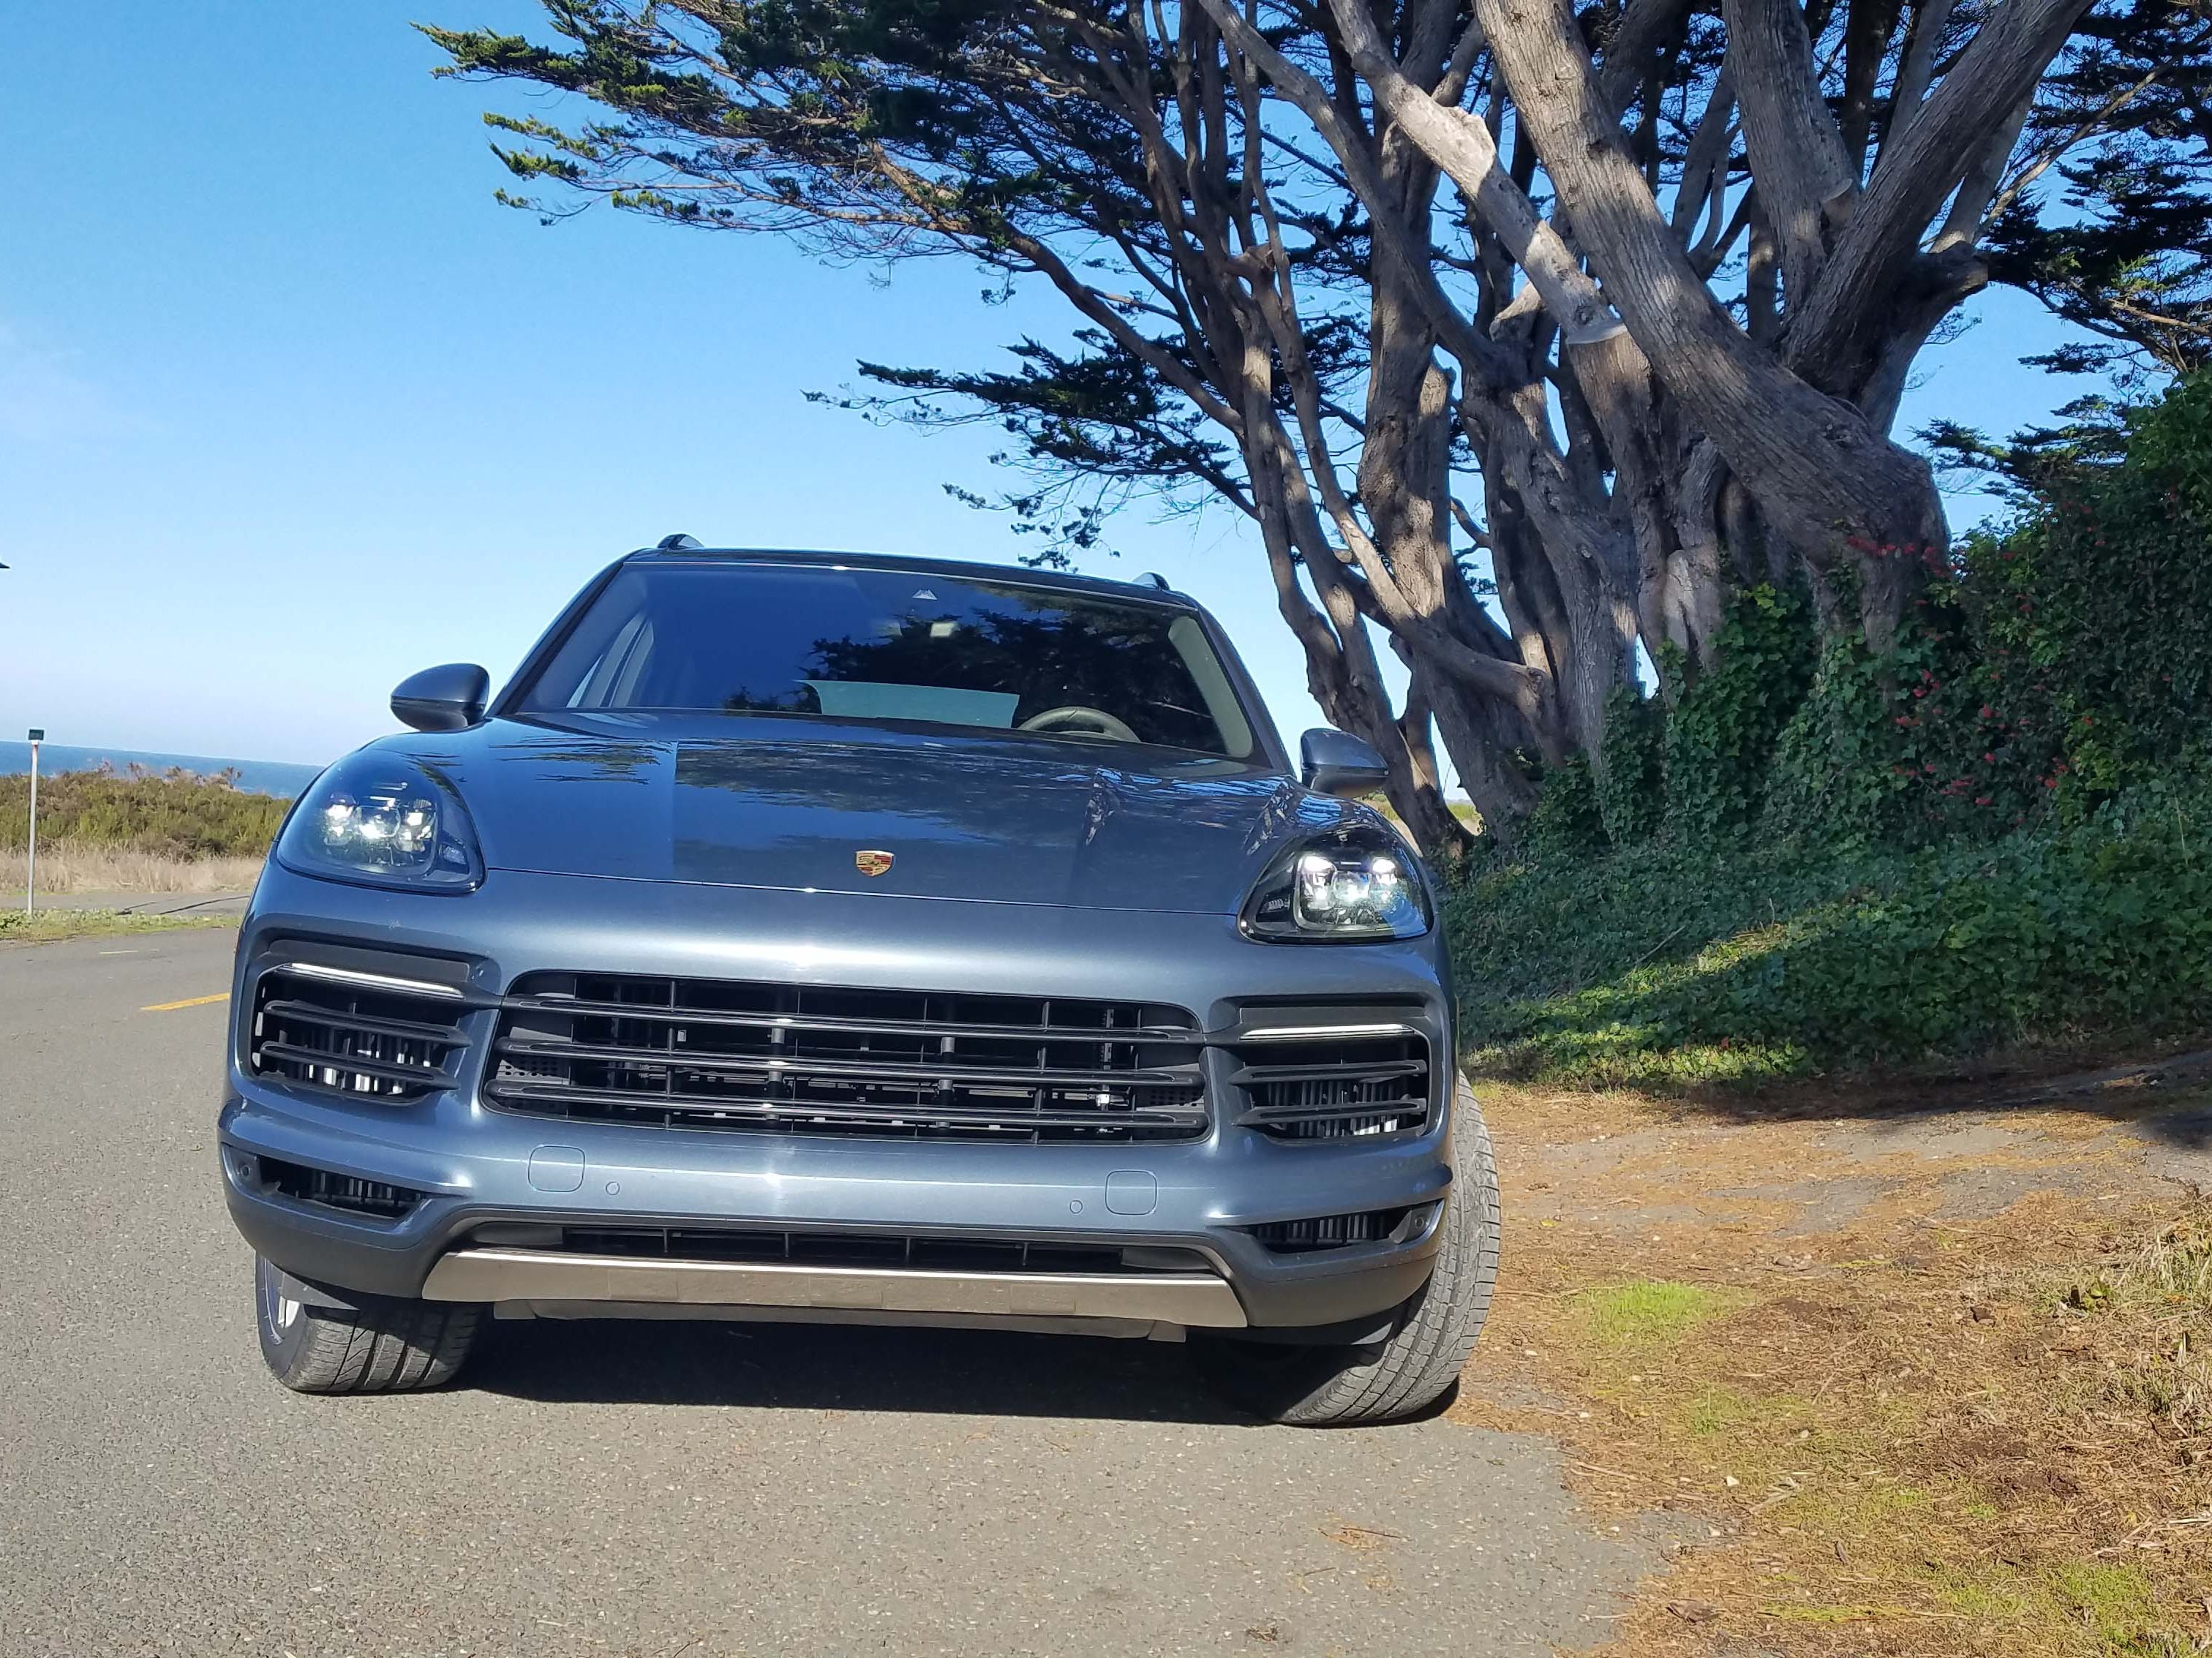 Just breathe. The 2019 Porsche Cayenne features big intakes to feed its hungry, turbocharged engine.